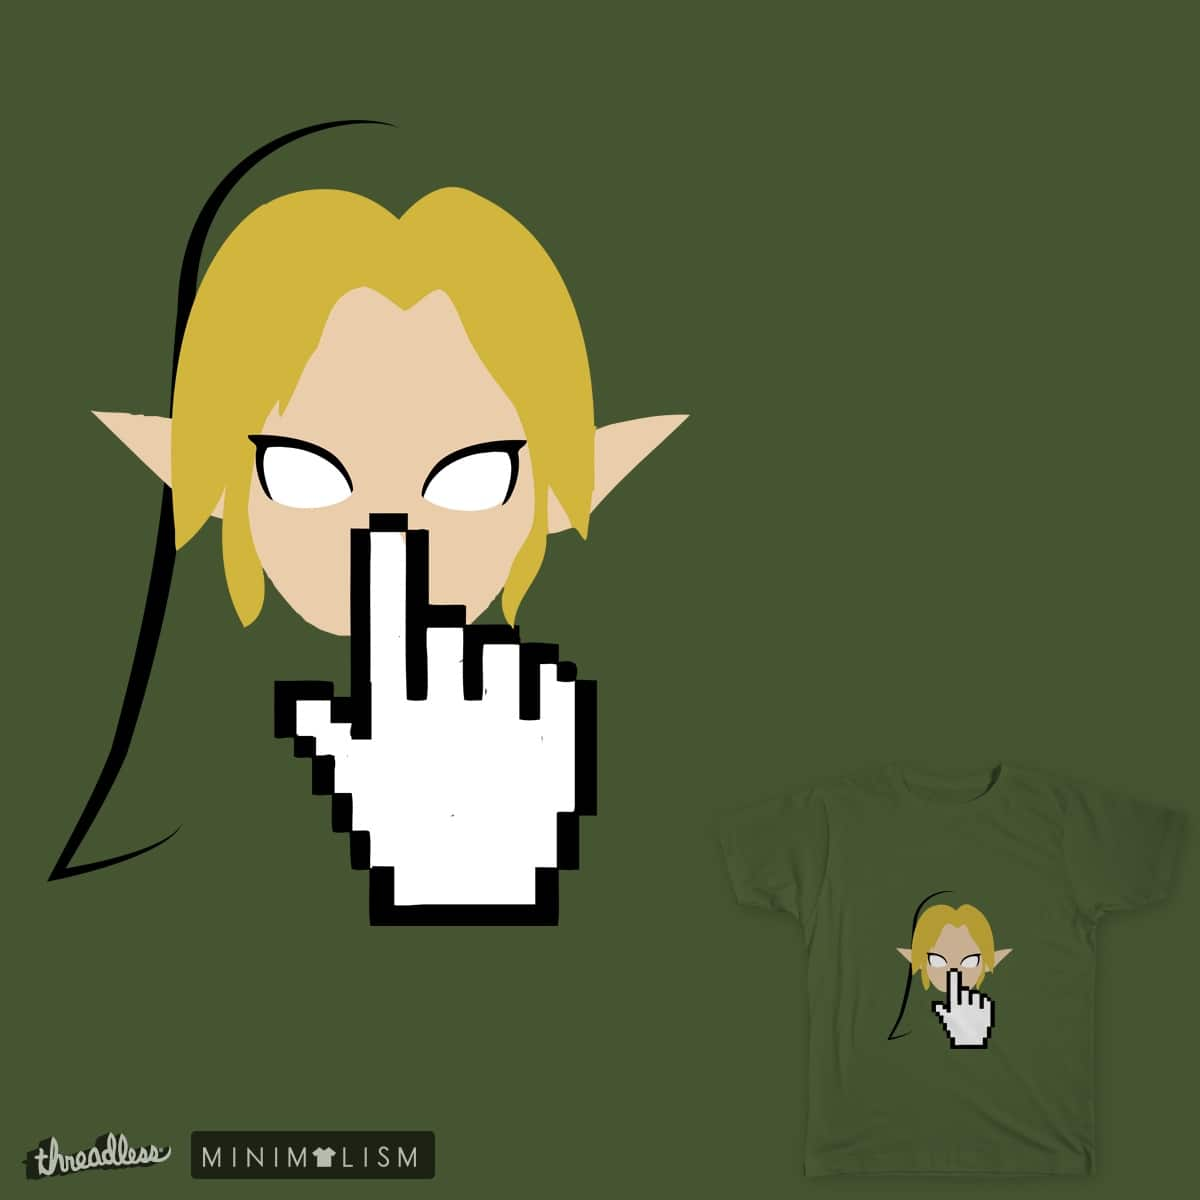 Please open the link below to an adventure by deividyhertz on Threadless